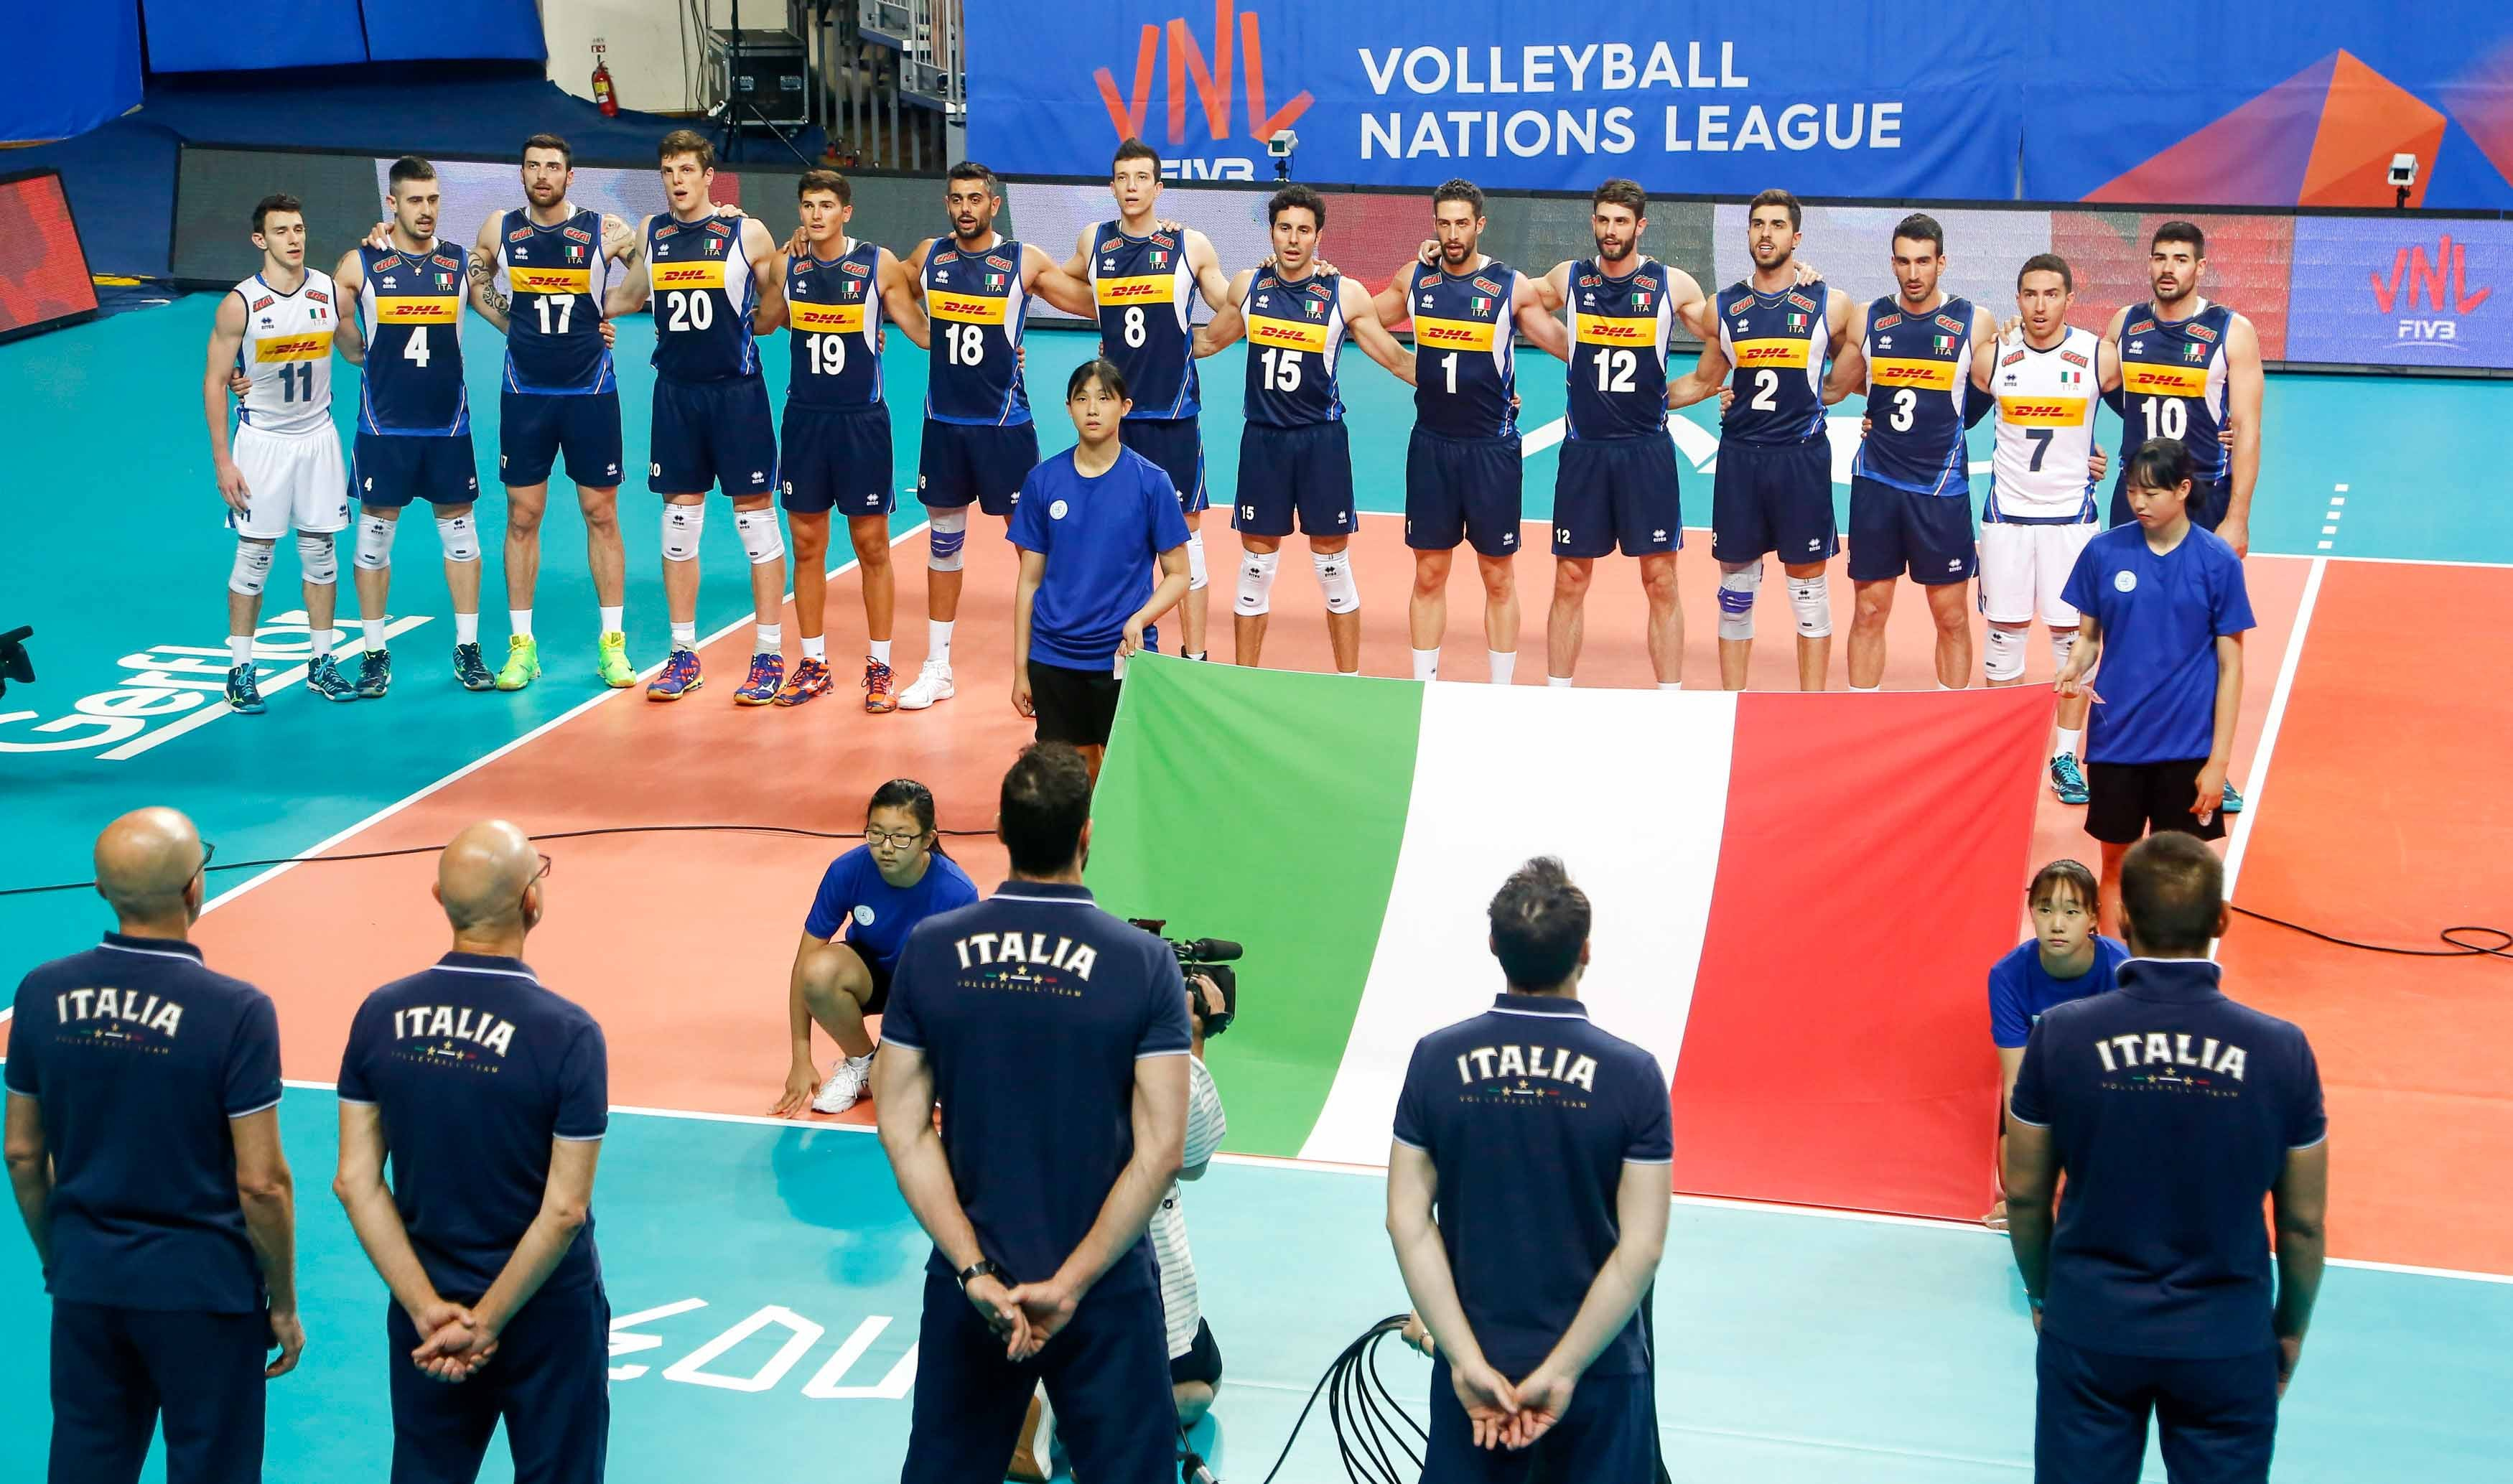 Men's Volleyball Nations League - from 22 to 24 June play moves to Modena, with the big names Italy, France, USA and Russia